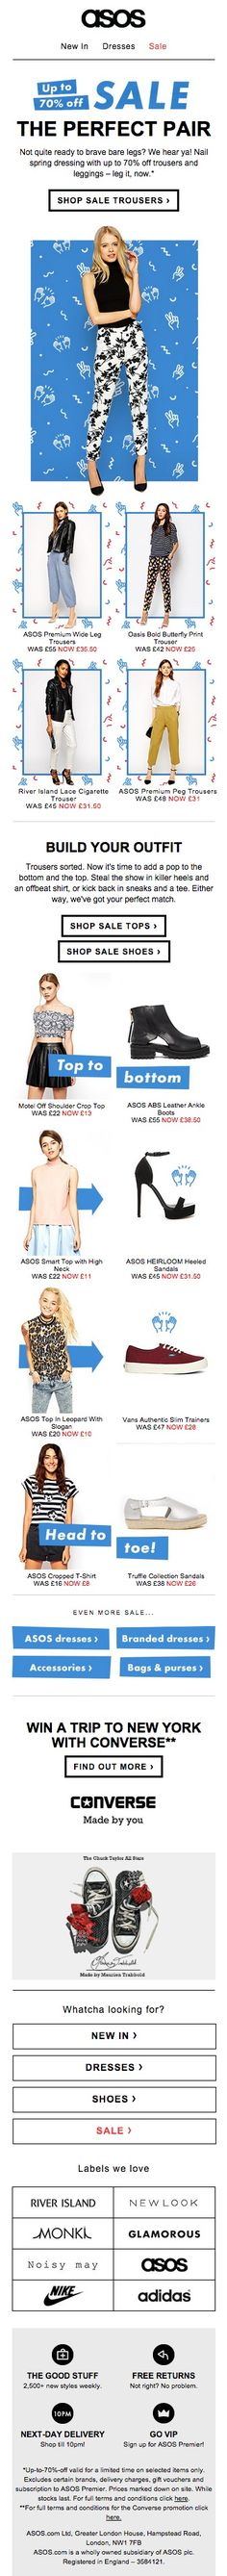 offer email deal discount ASOS